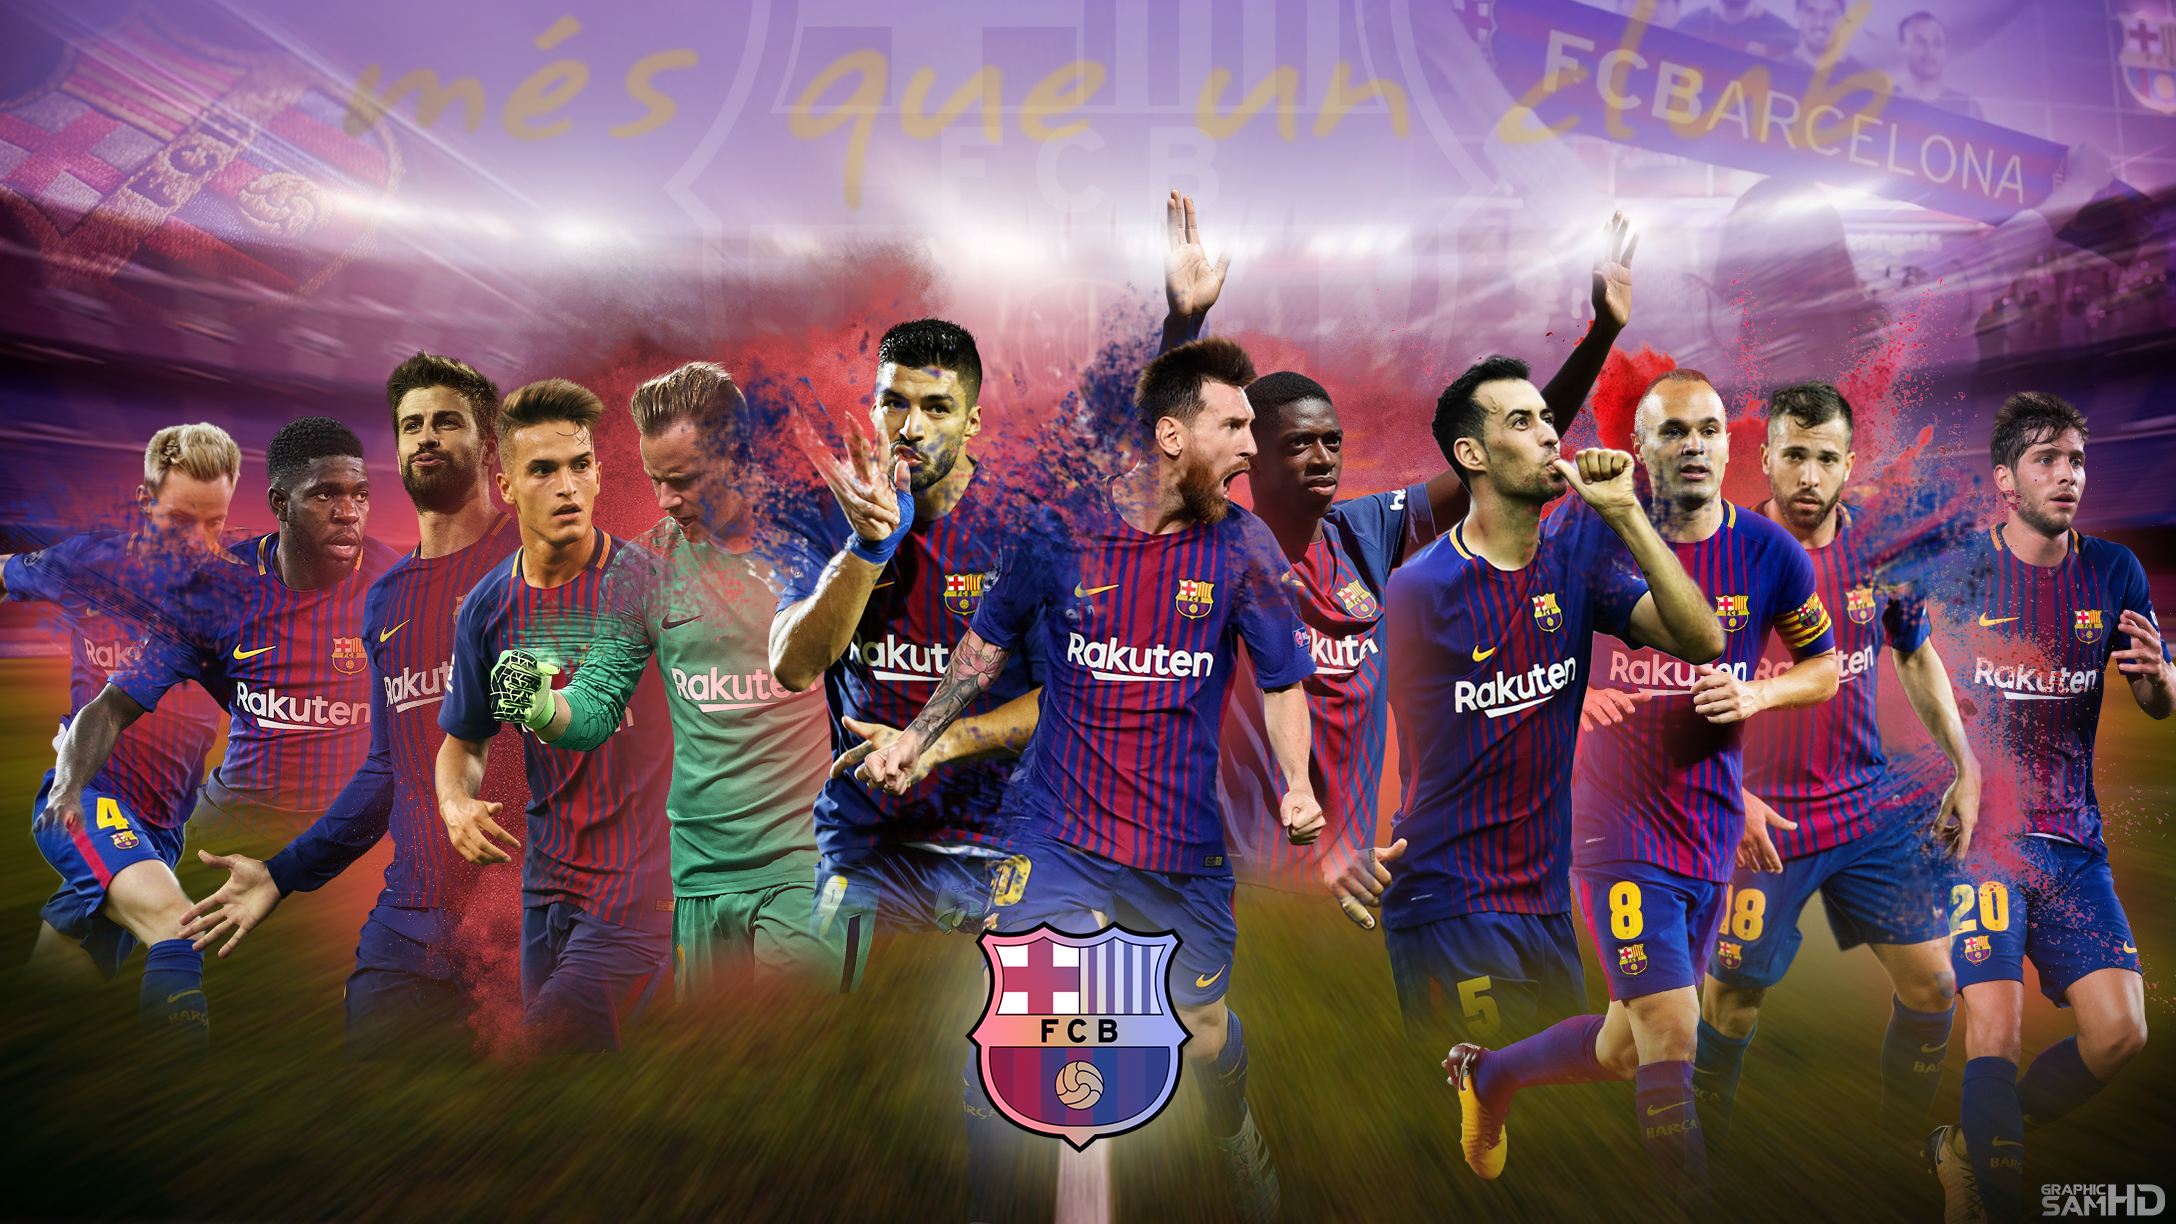 Fc Barcelona Desktop Wallpaper 2017 2018 By Graphicsamhd On Deviantart